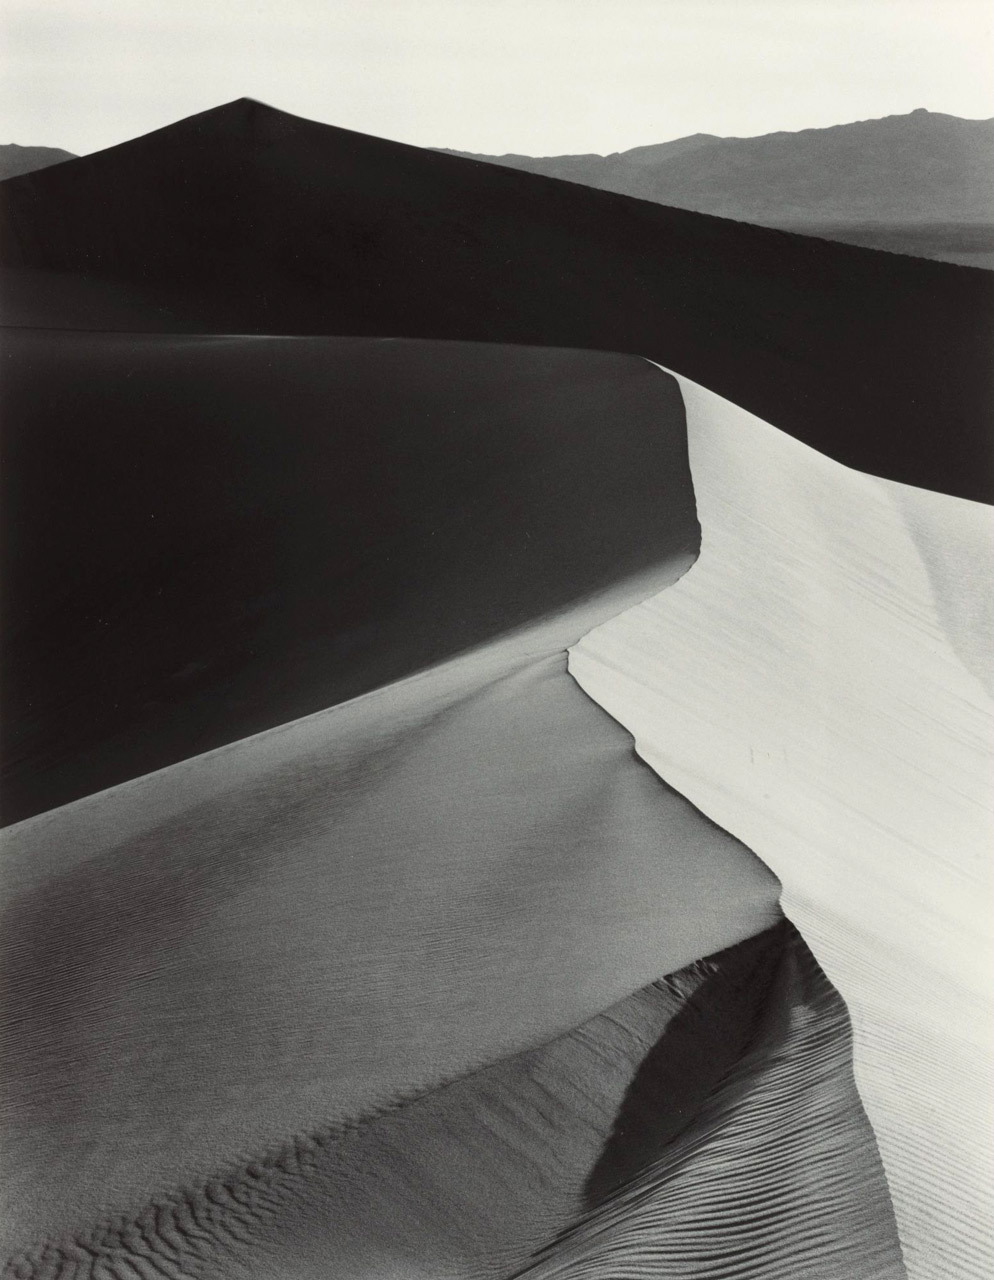 Ansel Adams, Sand Dunes; Sunrise, Death Valley,1948. Thank you, melisaki.